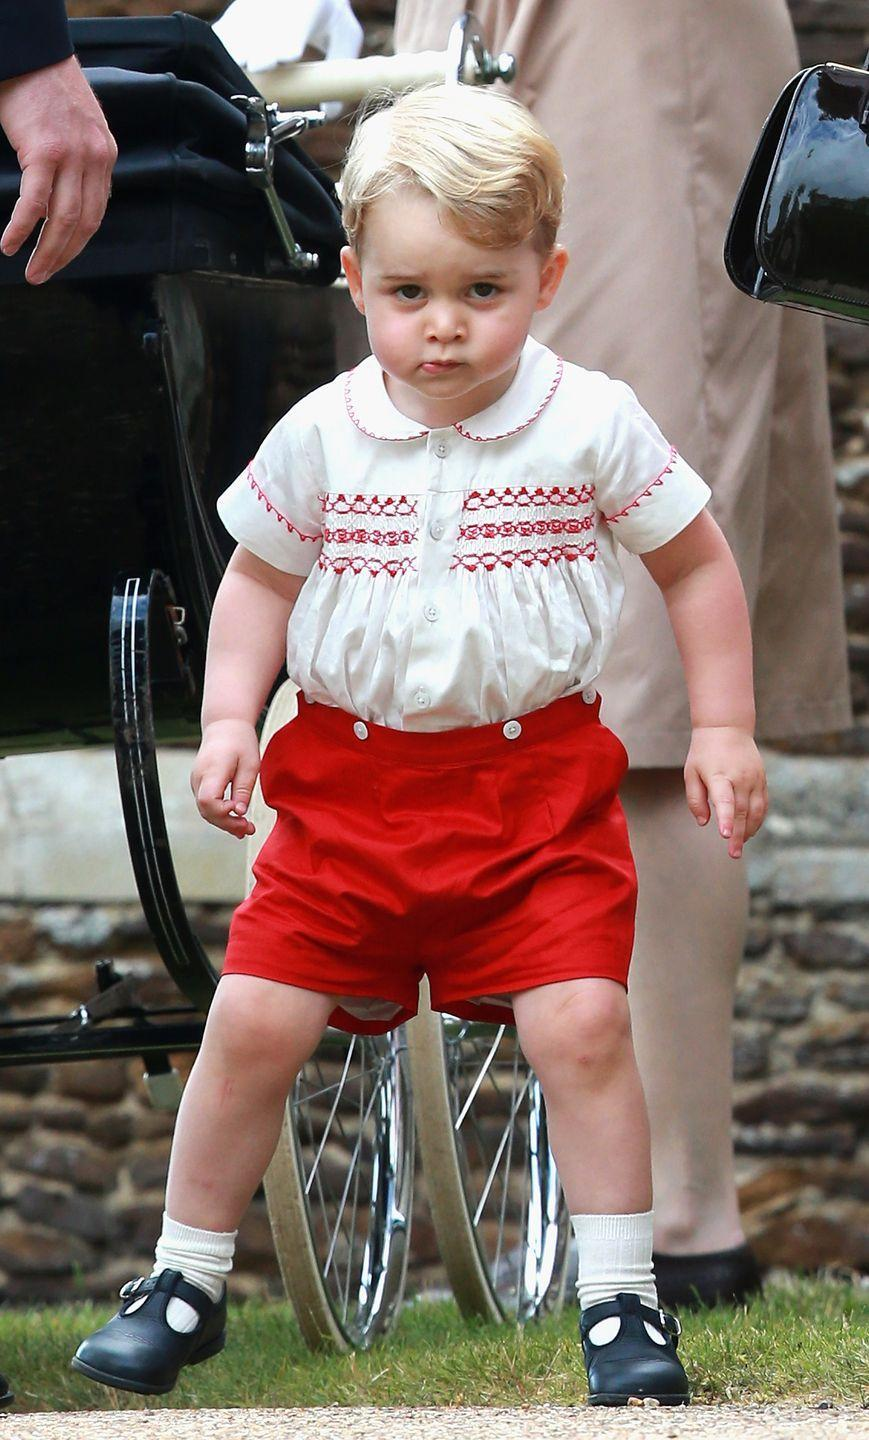 """<p>Prince George, er, """"greets"""" the media following the christening of his baby sister, Princess Charlotte, at the Church of St. Mary Magdalene in Sandringham.</p>"""